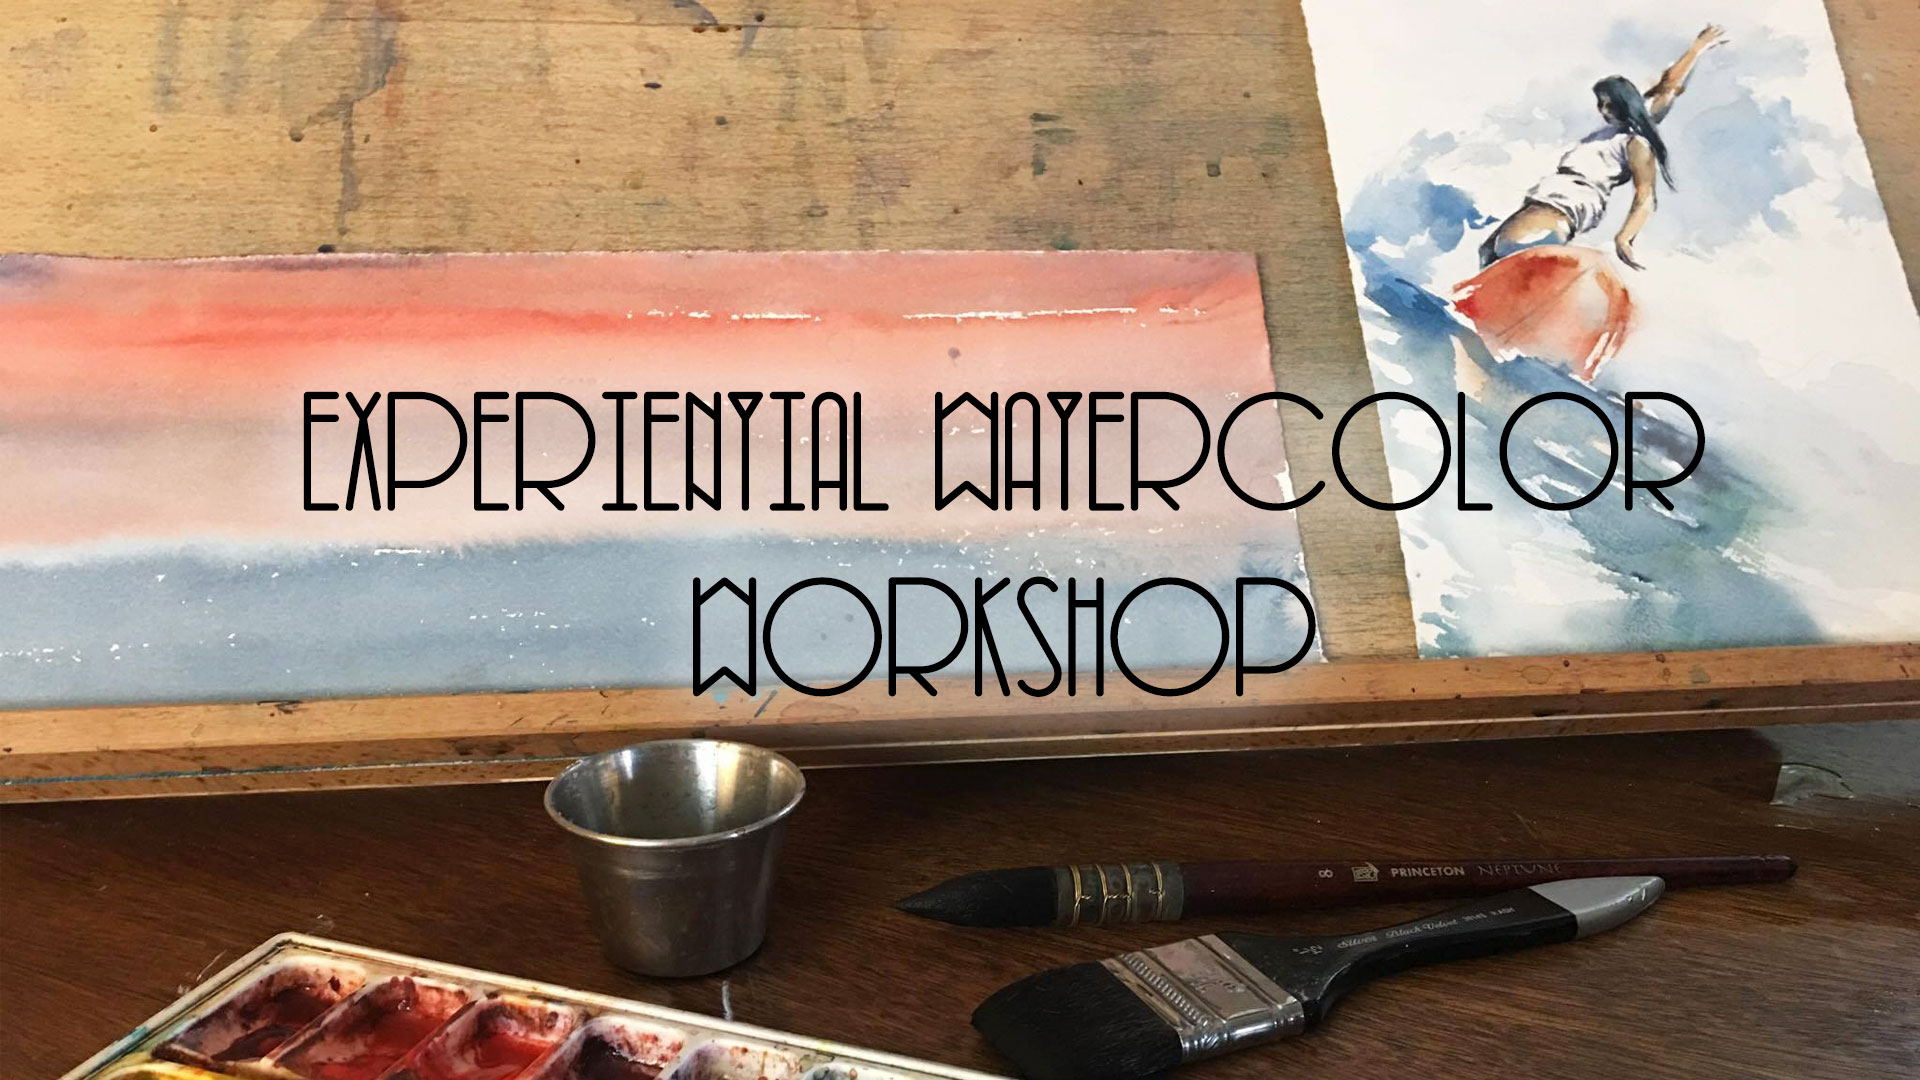 Experiential Watercolour Workshop